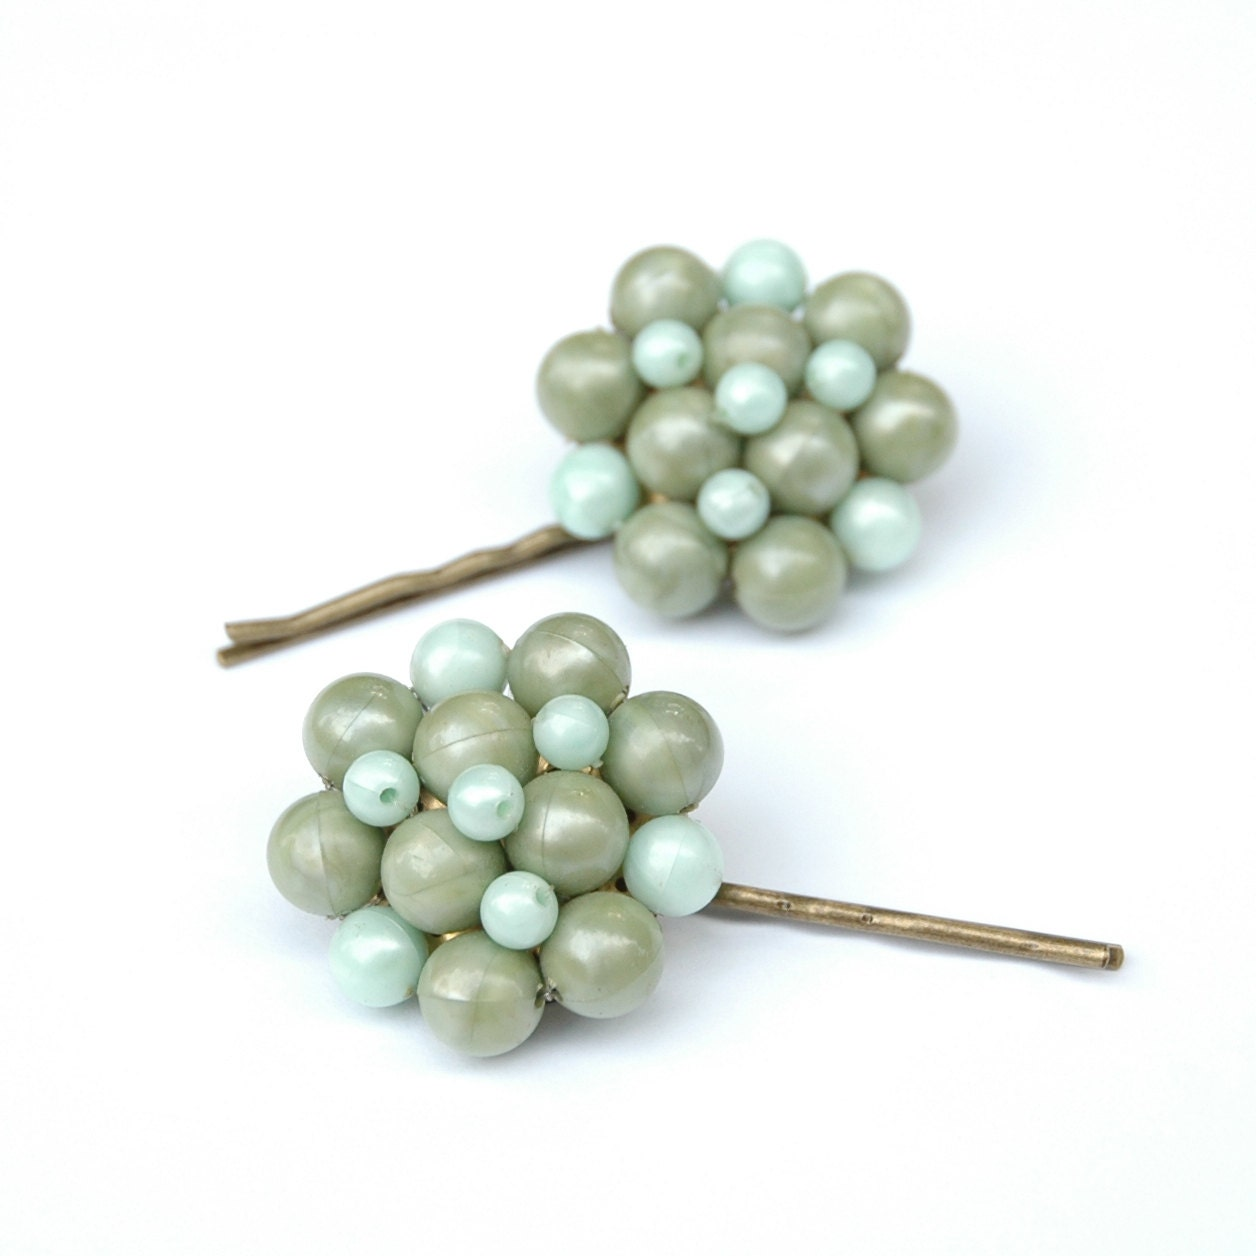 Upcycled Vintage Green Beaded Cluster Earring Hair Pins - SquishyBee